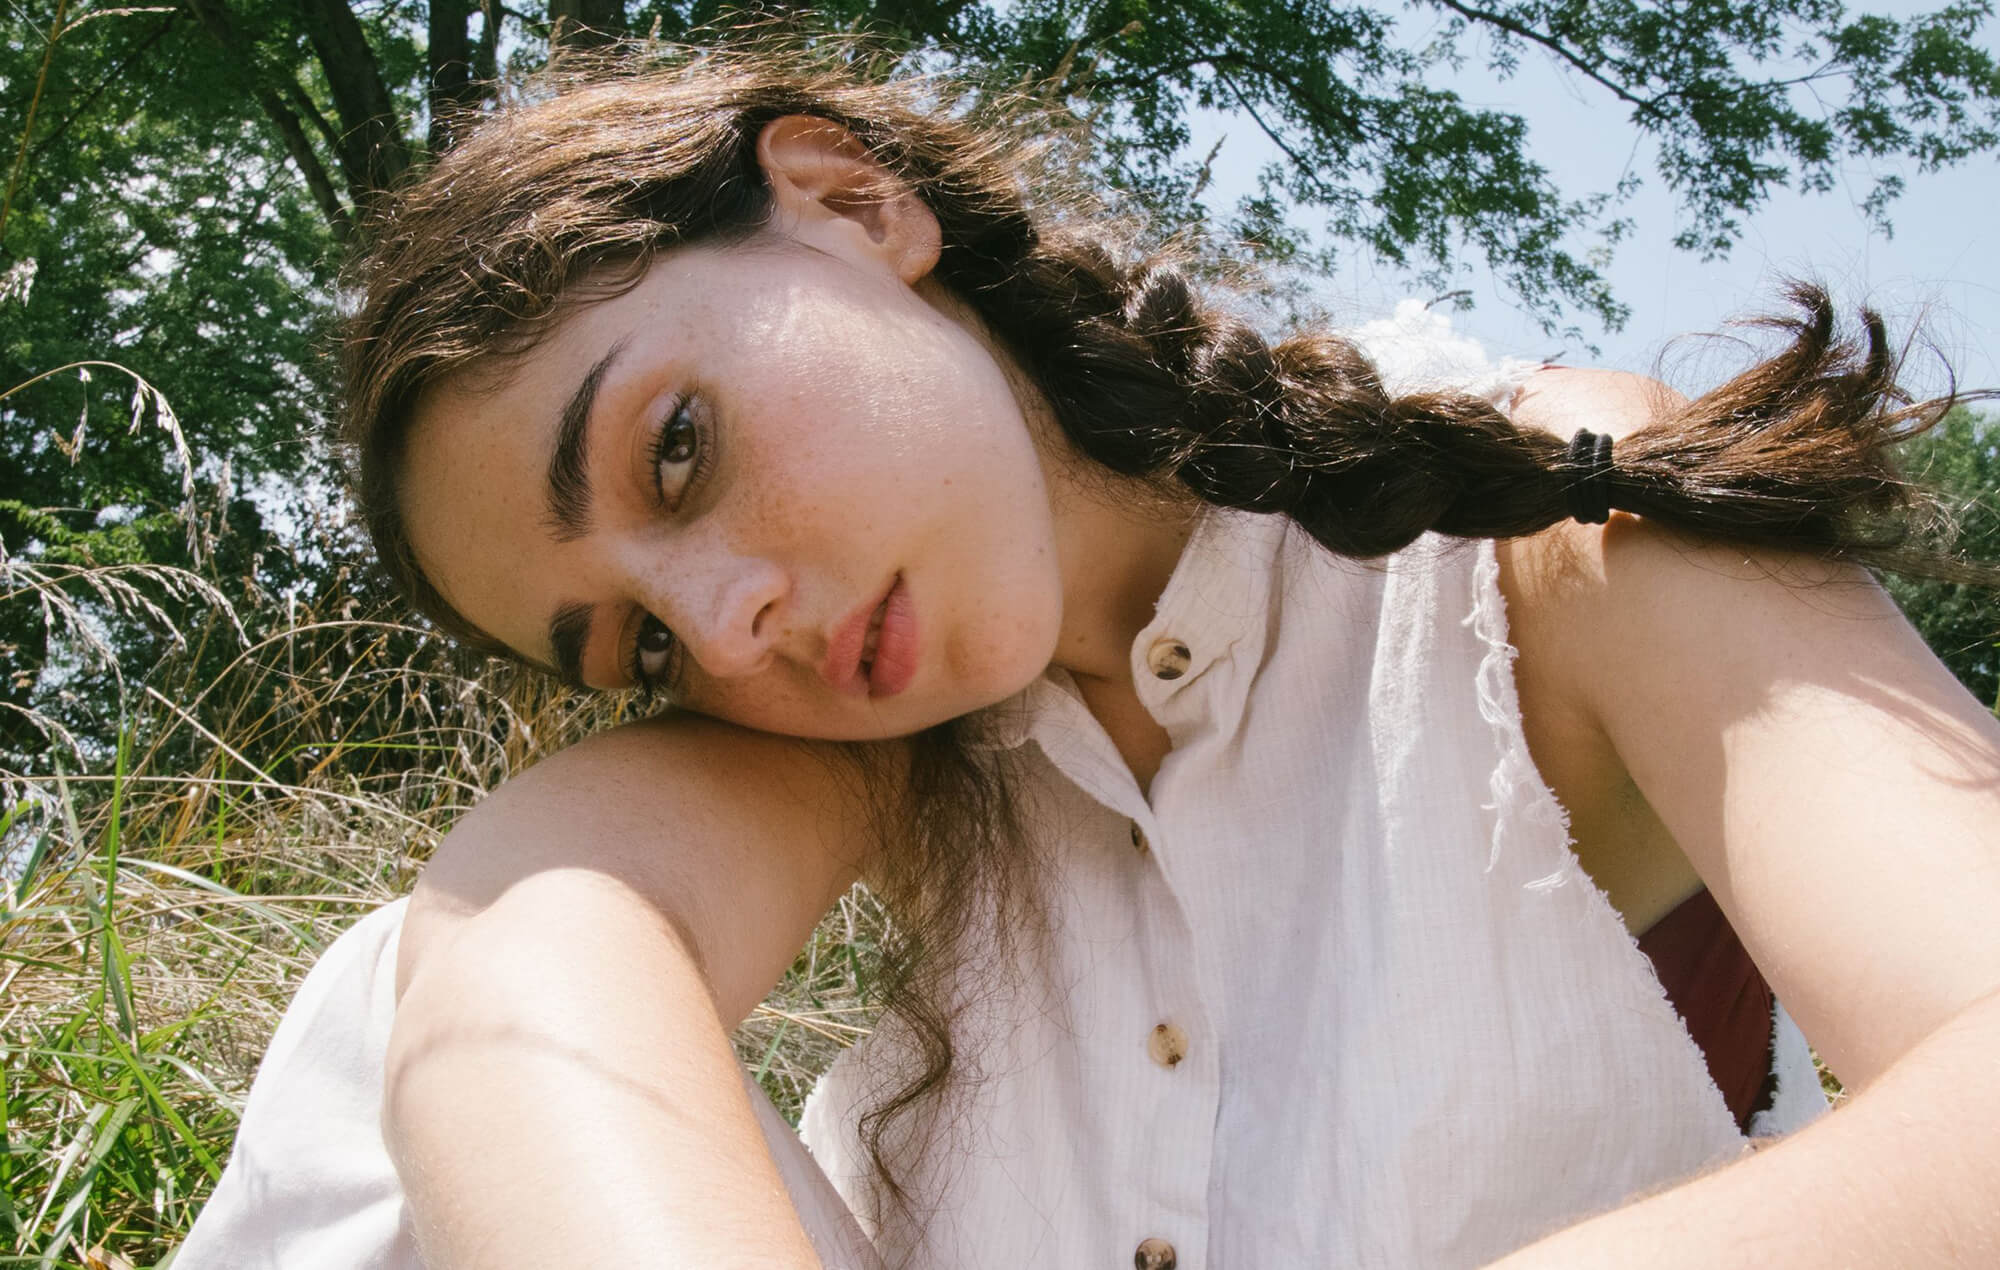 Photograph of Samia, a light-skinned young woman in her early twenties with thick dark eyebrows and long brown braided hair. She is wearing a white sleeveless buttoned shirt and is tilting her head to the right so it's resting on her arm and looking at the camera.